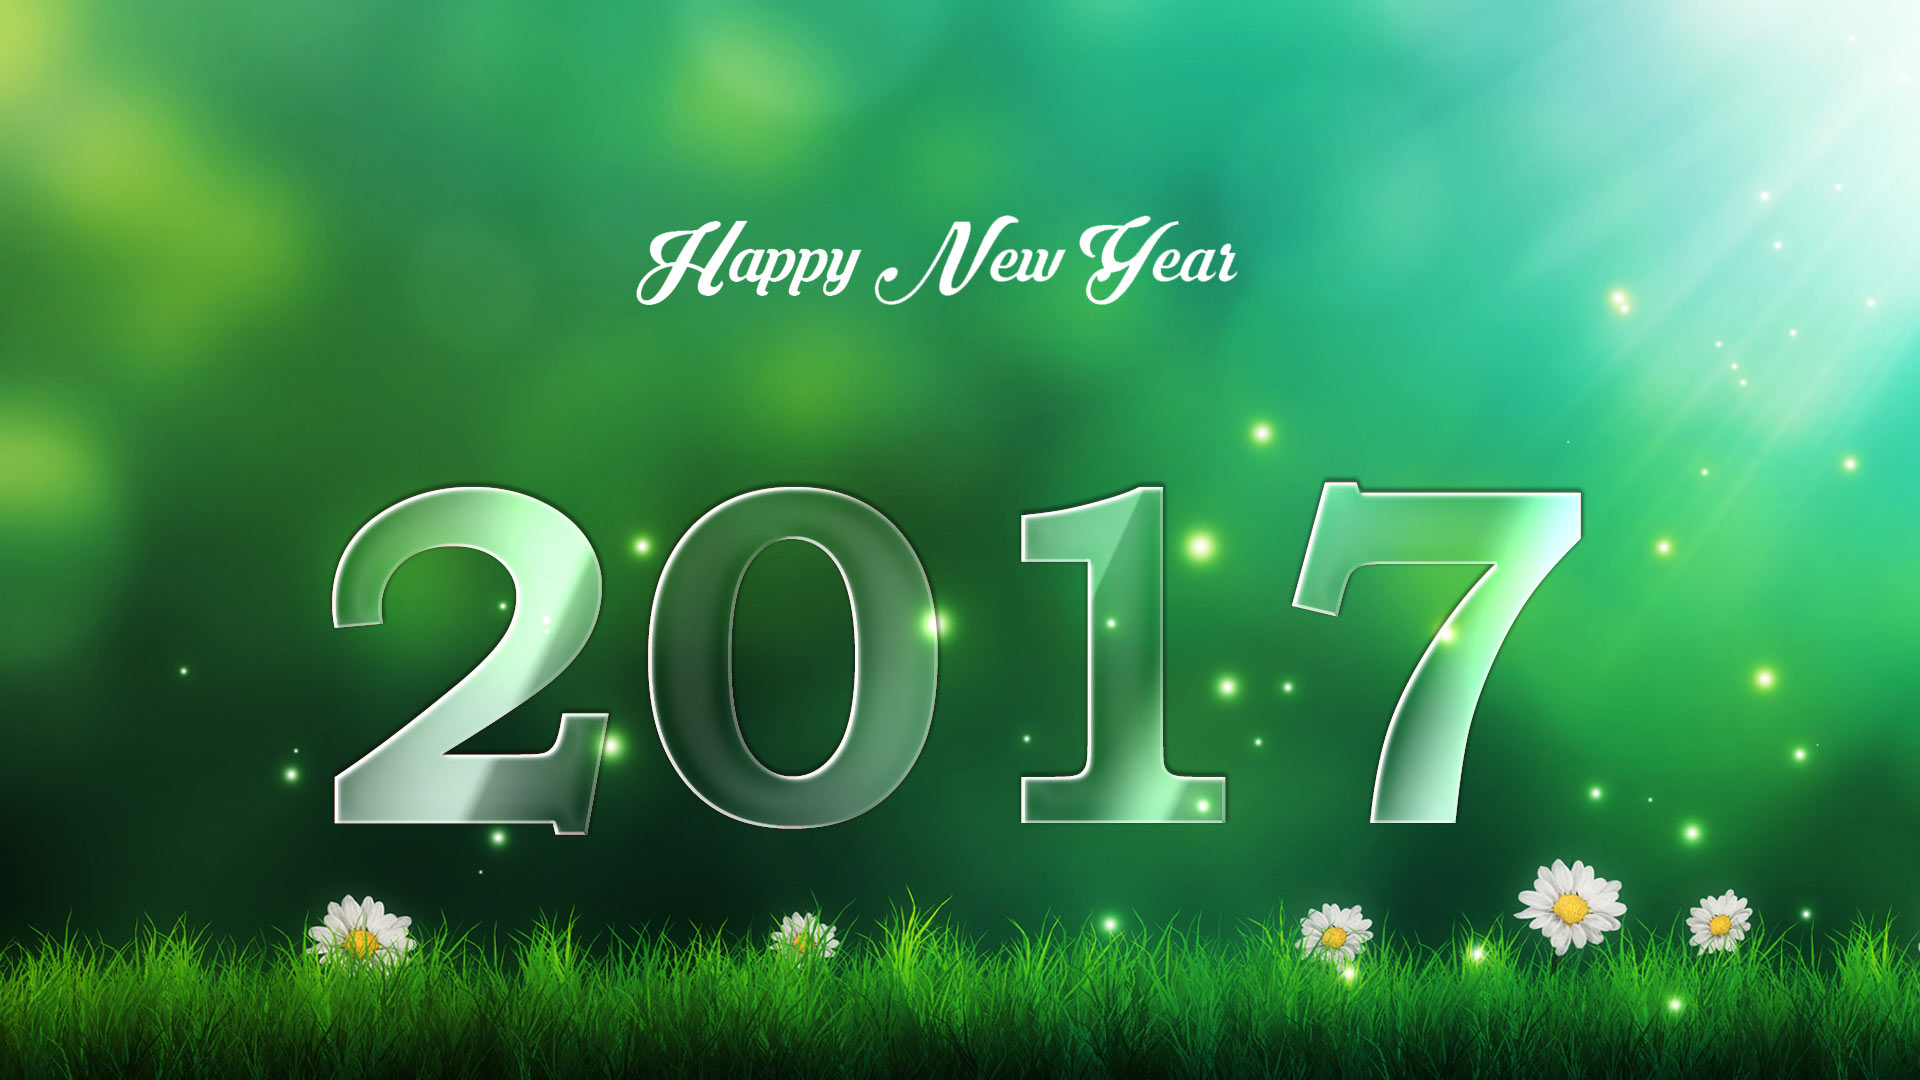 happy new year 2017 desktop wallpaper 59042 1920x1080 px